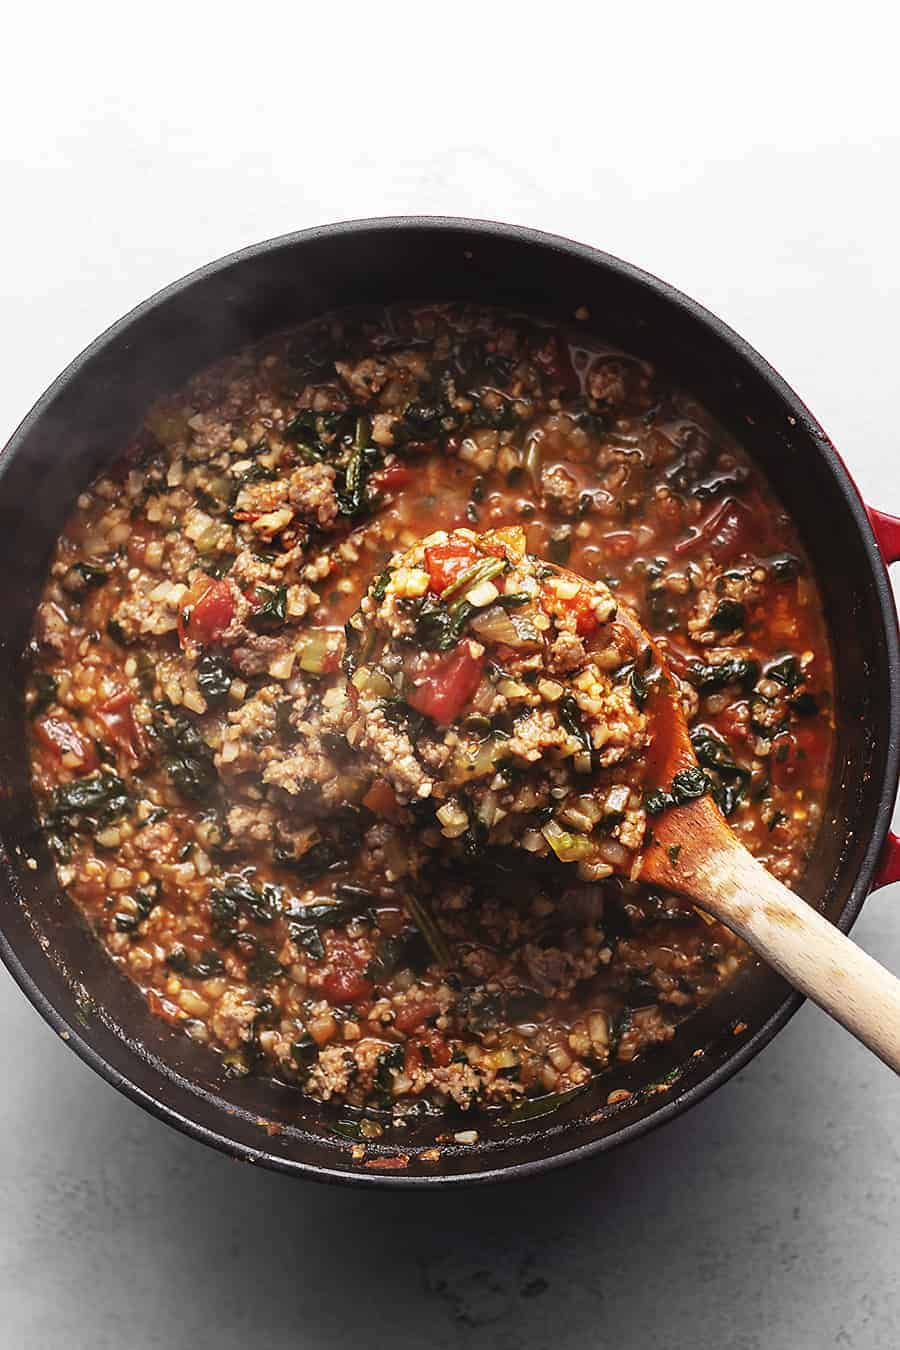 Italian Vegetable Stew with Sausage in a pot